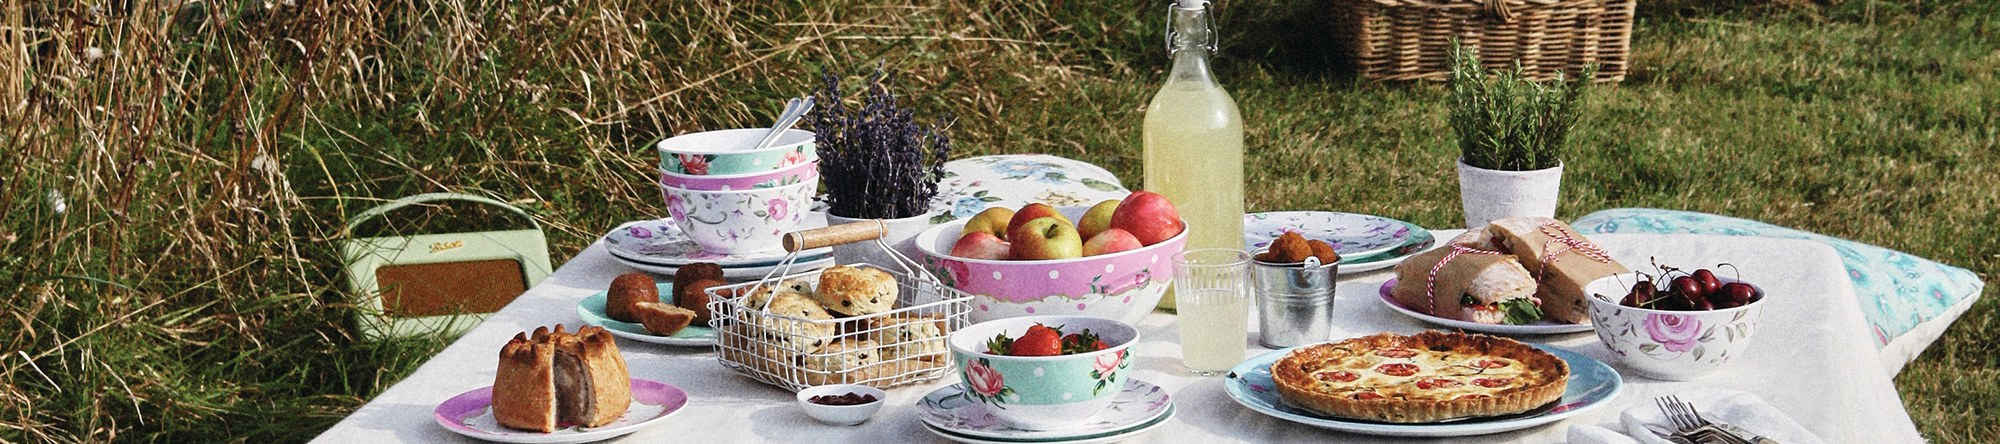 Outdoor Living Brands : Outdoor Living - Royal Doulton® Outlet